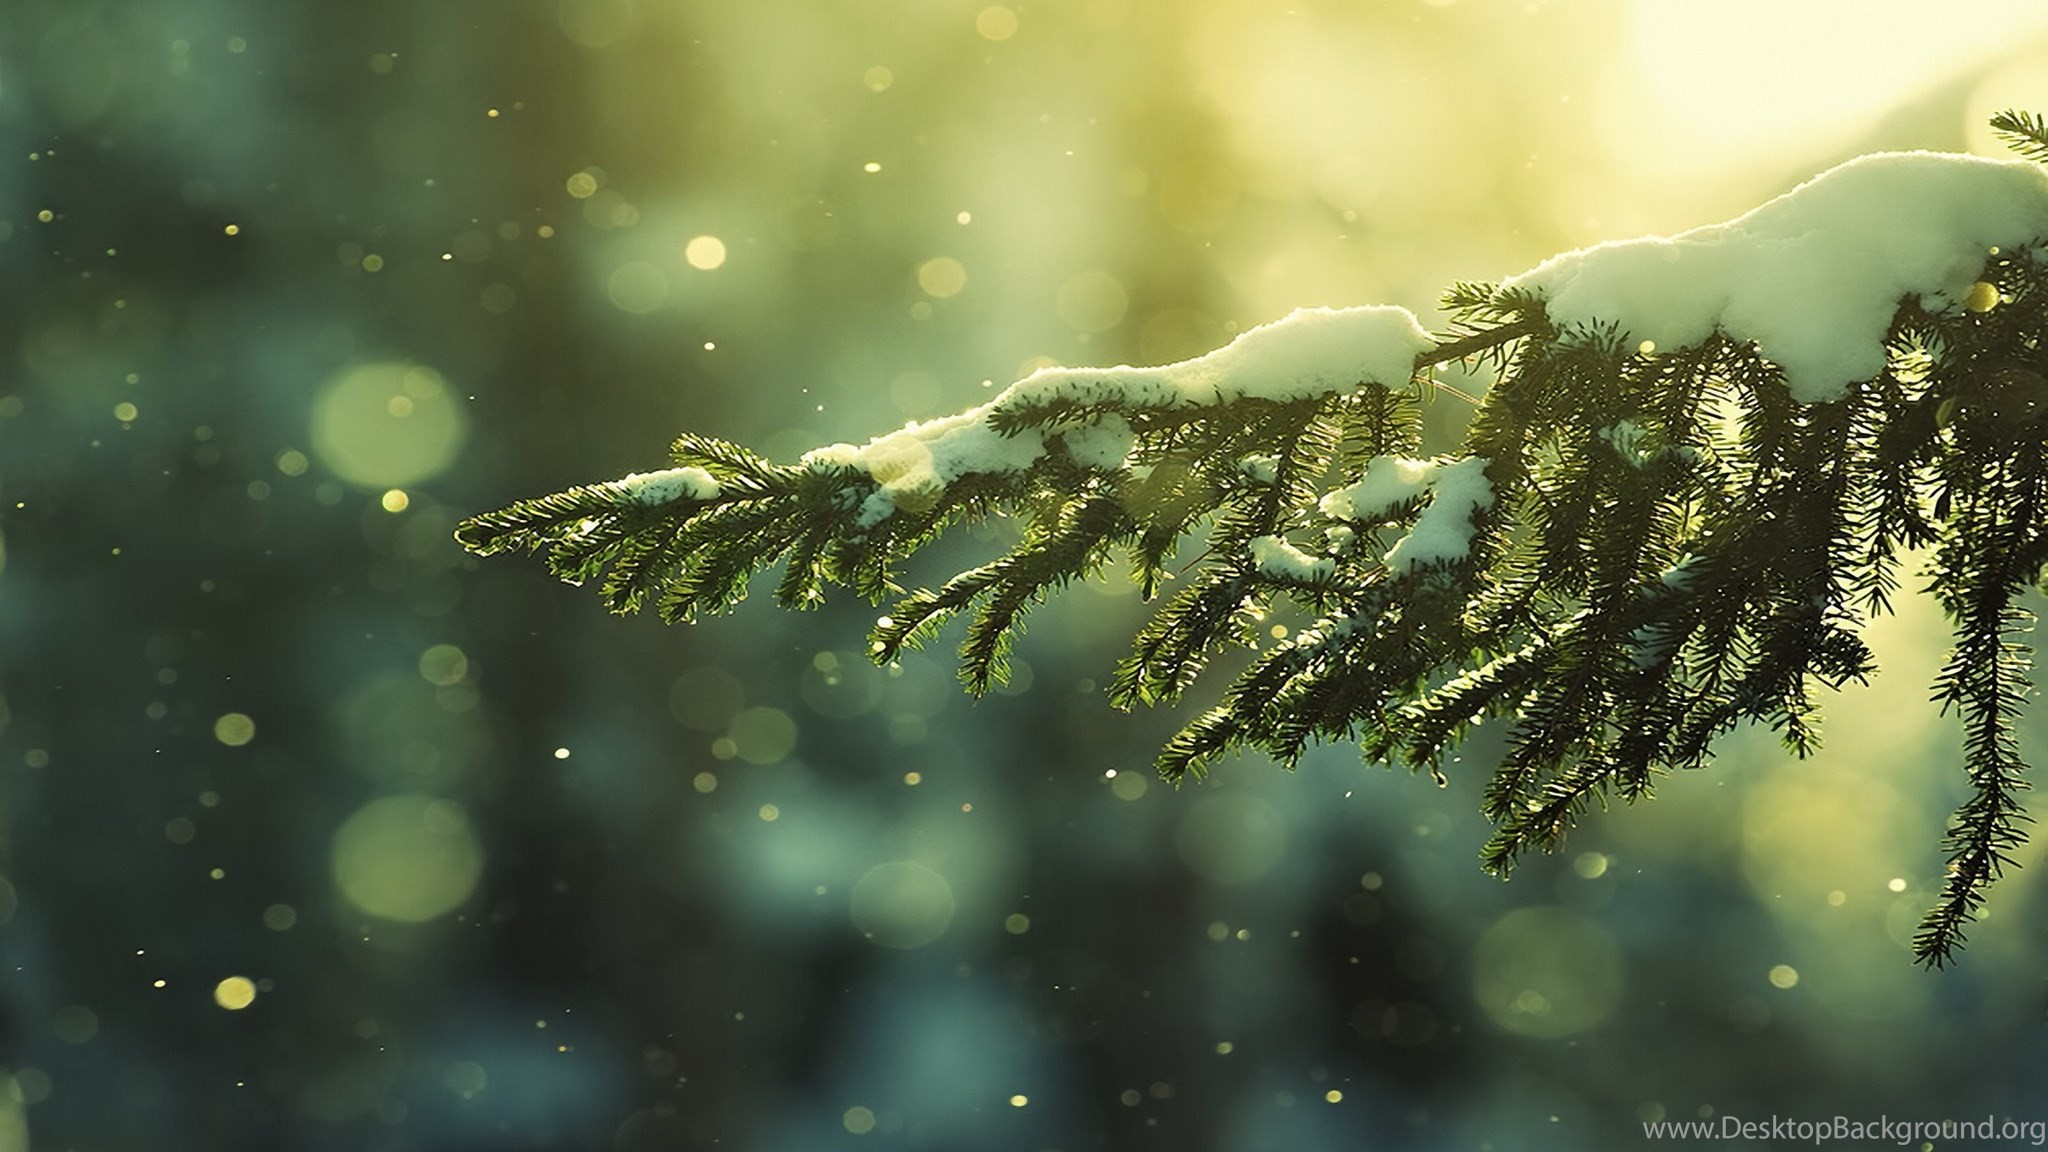 2048x1152 Dual Monitor Christmas Wallpaper